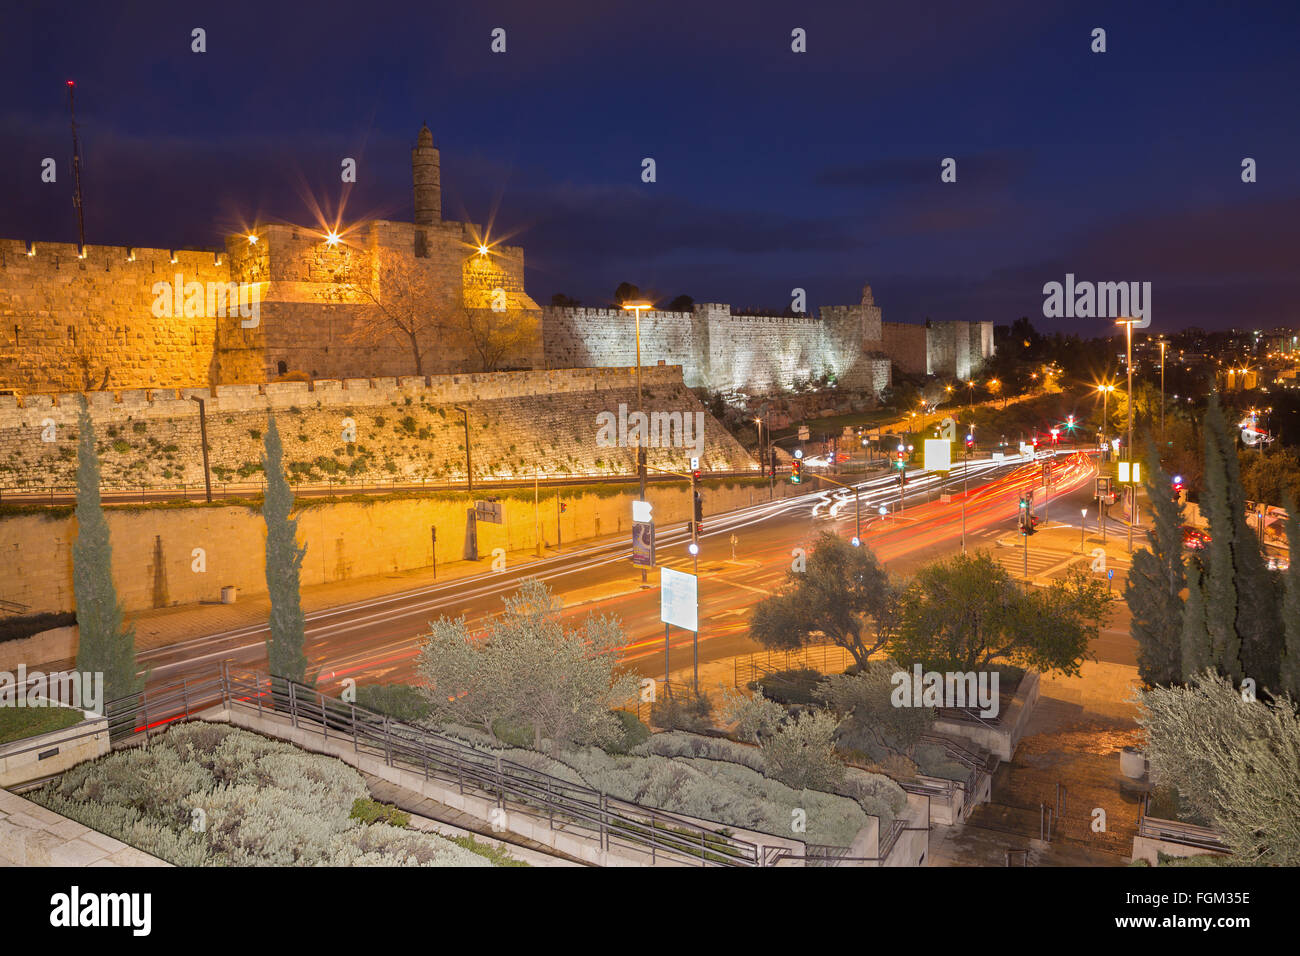 JERUSALEM, ISRAEL - MARCH 4, 2015: The tower of David and west part of old town walls at dusk - Stock Image